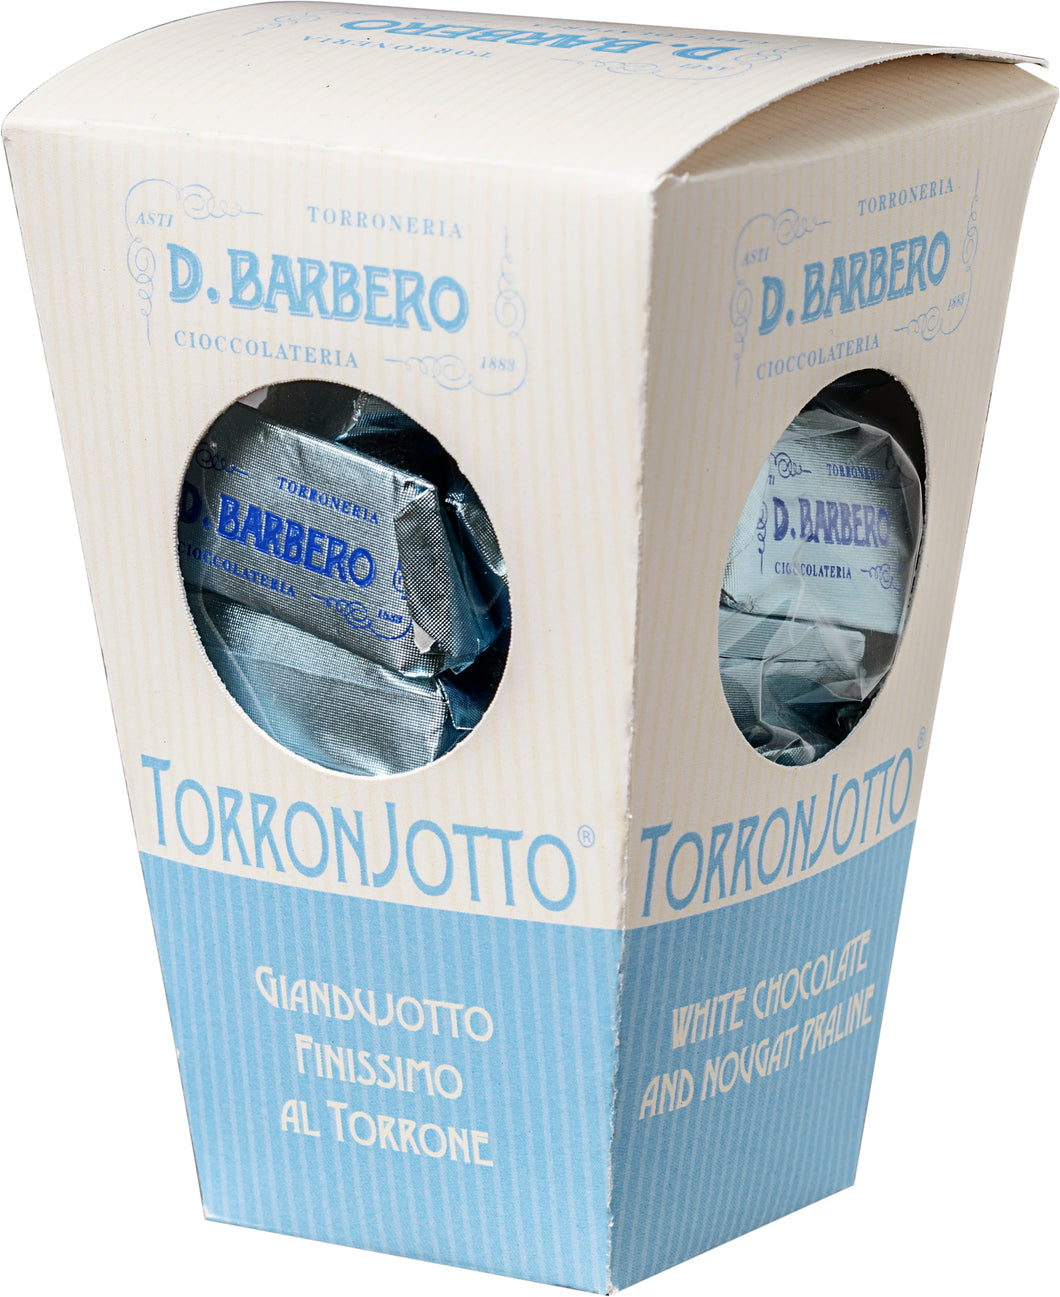 TORRONJOTTI CHOCOLATES